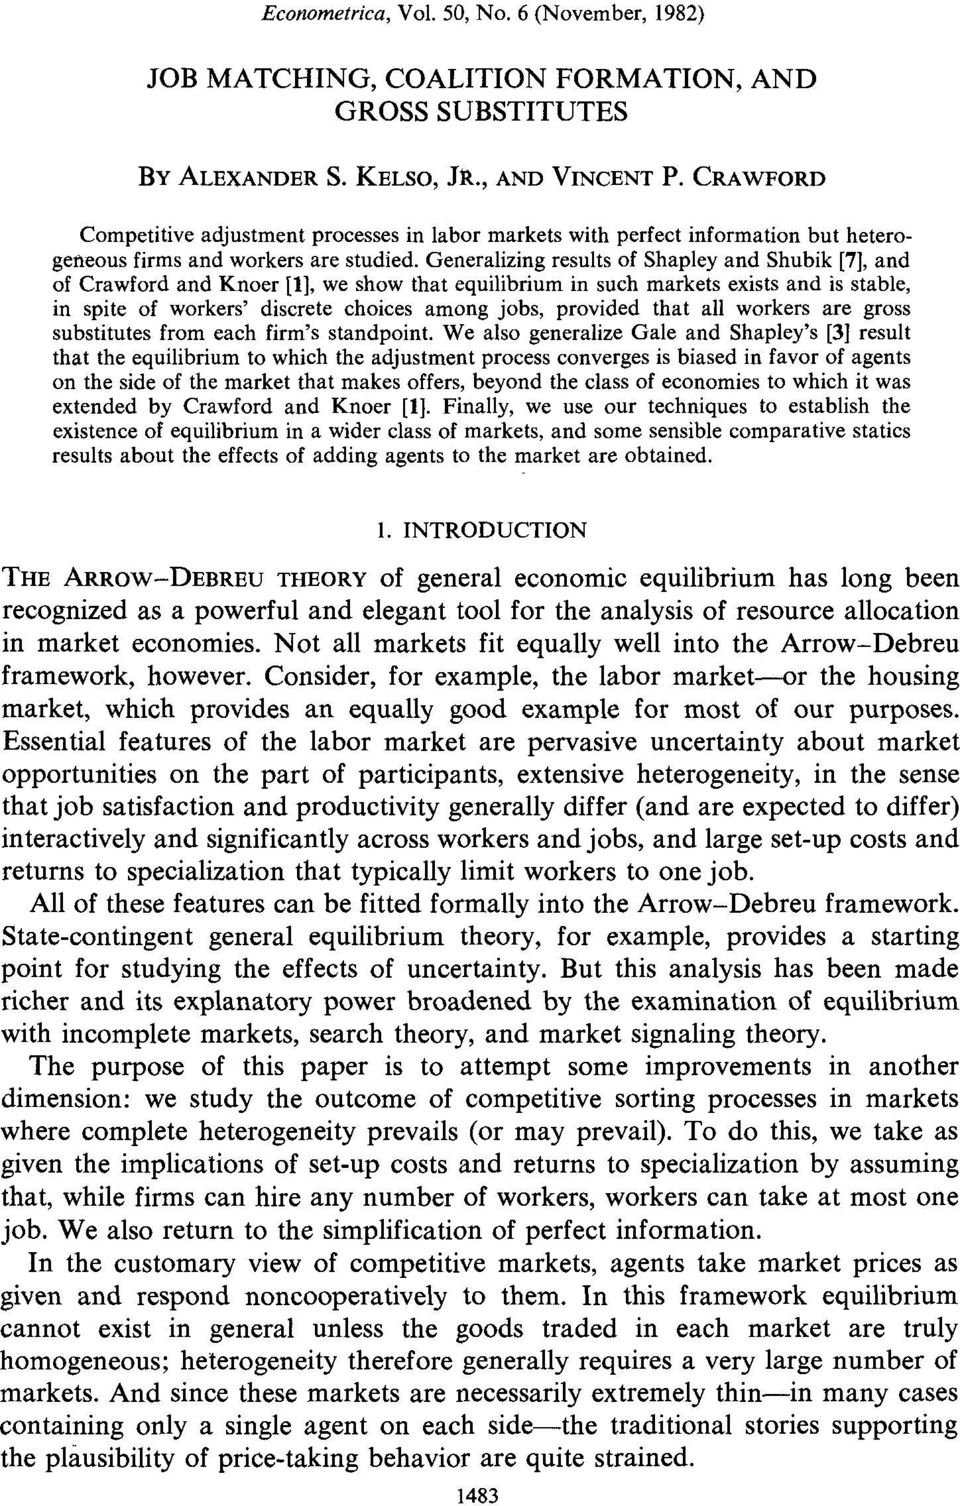 Generalizing results of Shapley and Shubik [7], and of Crawford and Knoer [I], we show that equilibrium in such markets exists and is stable, in spite of workers' discrete choices among jobs,